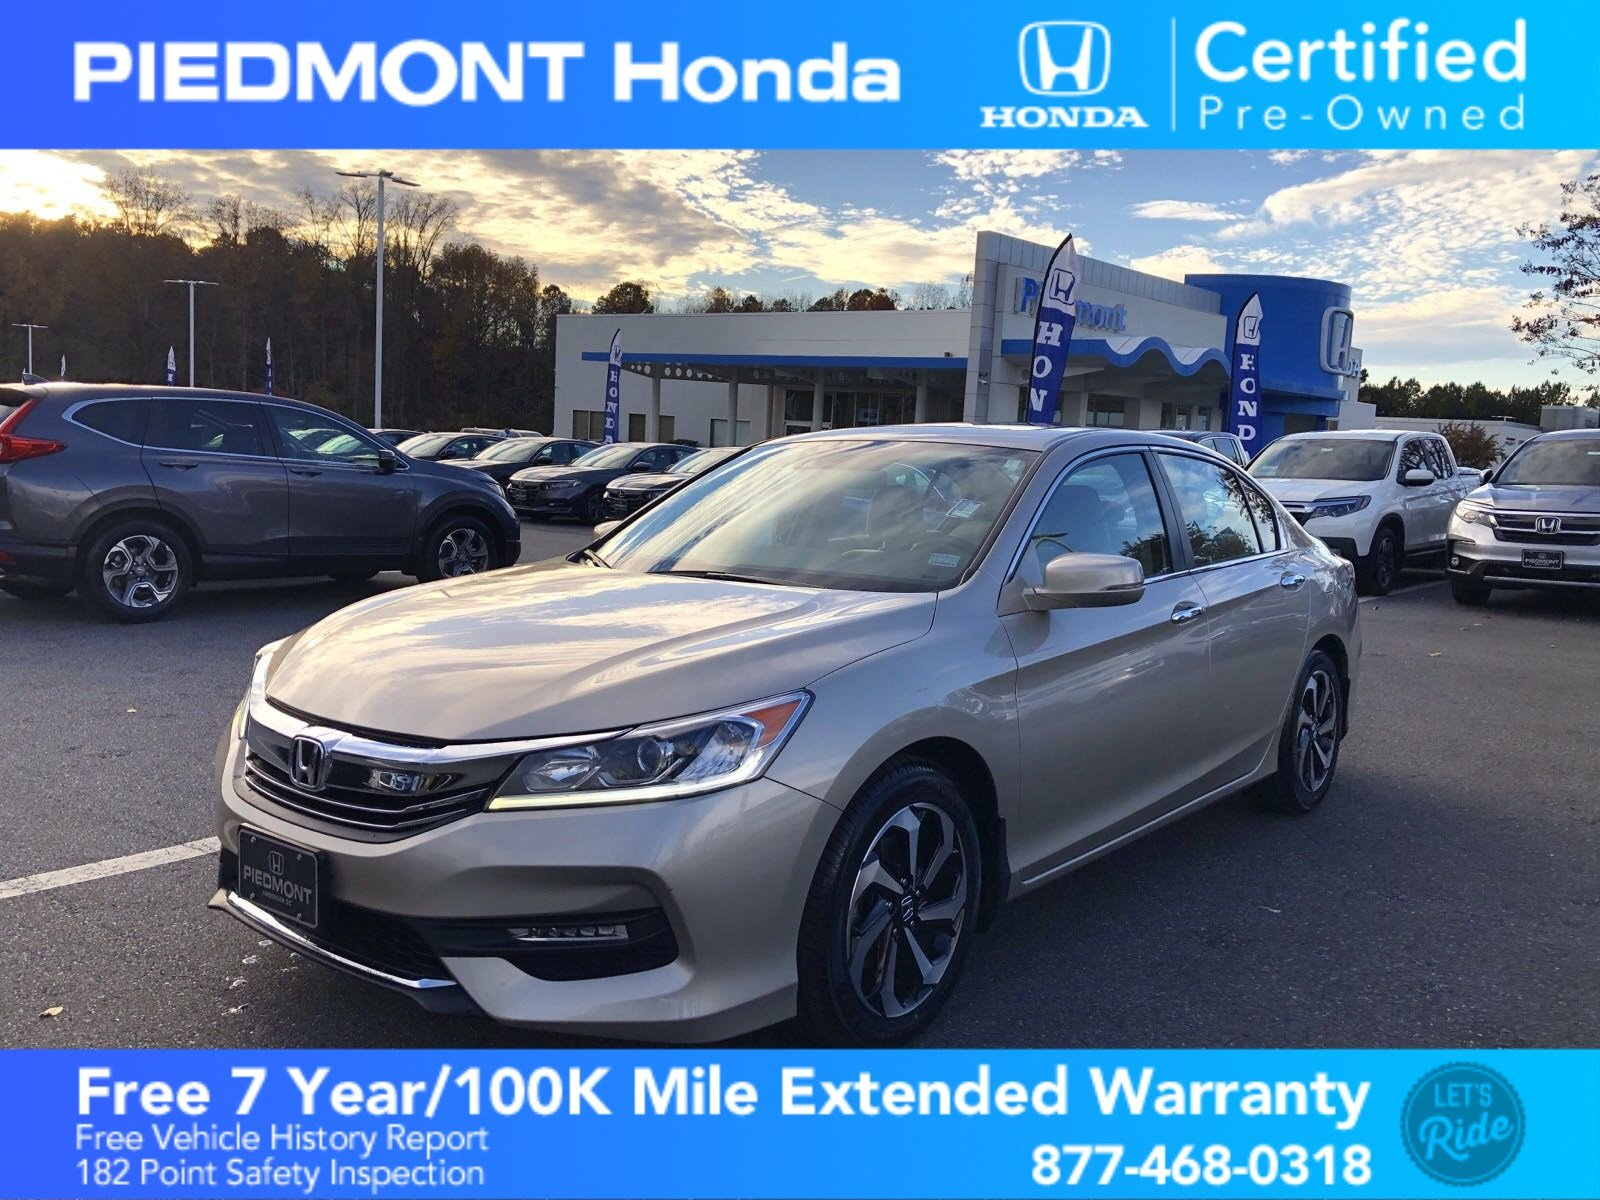 Certified Pre-Owned 2016 Honda Accord Sedan 4dr I4 CVT EX w/Honda Sensing